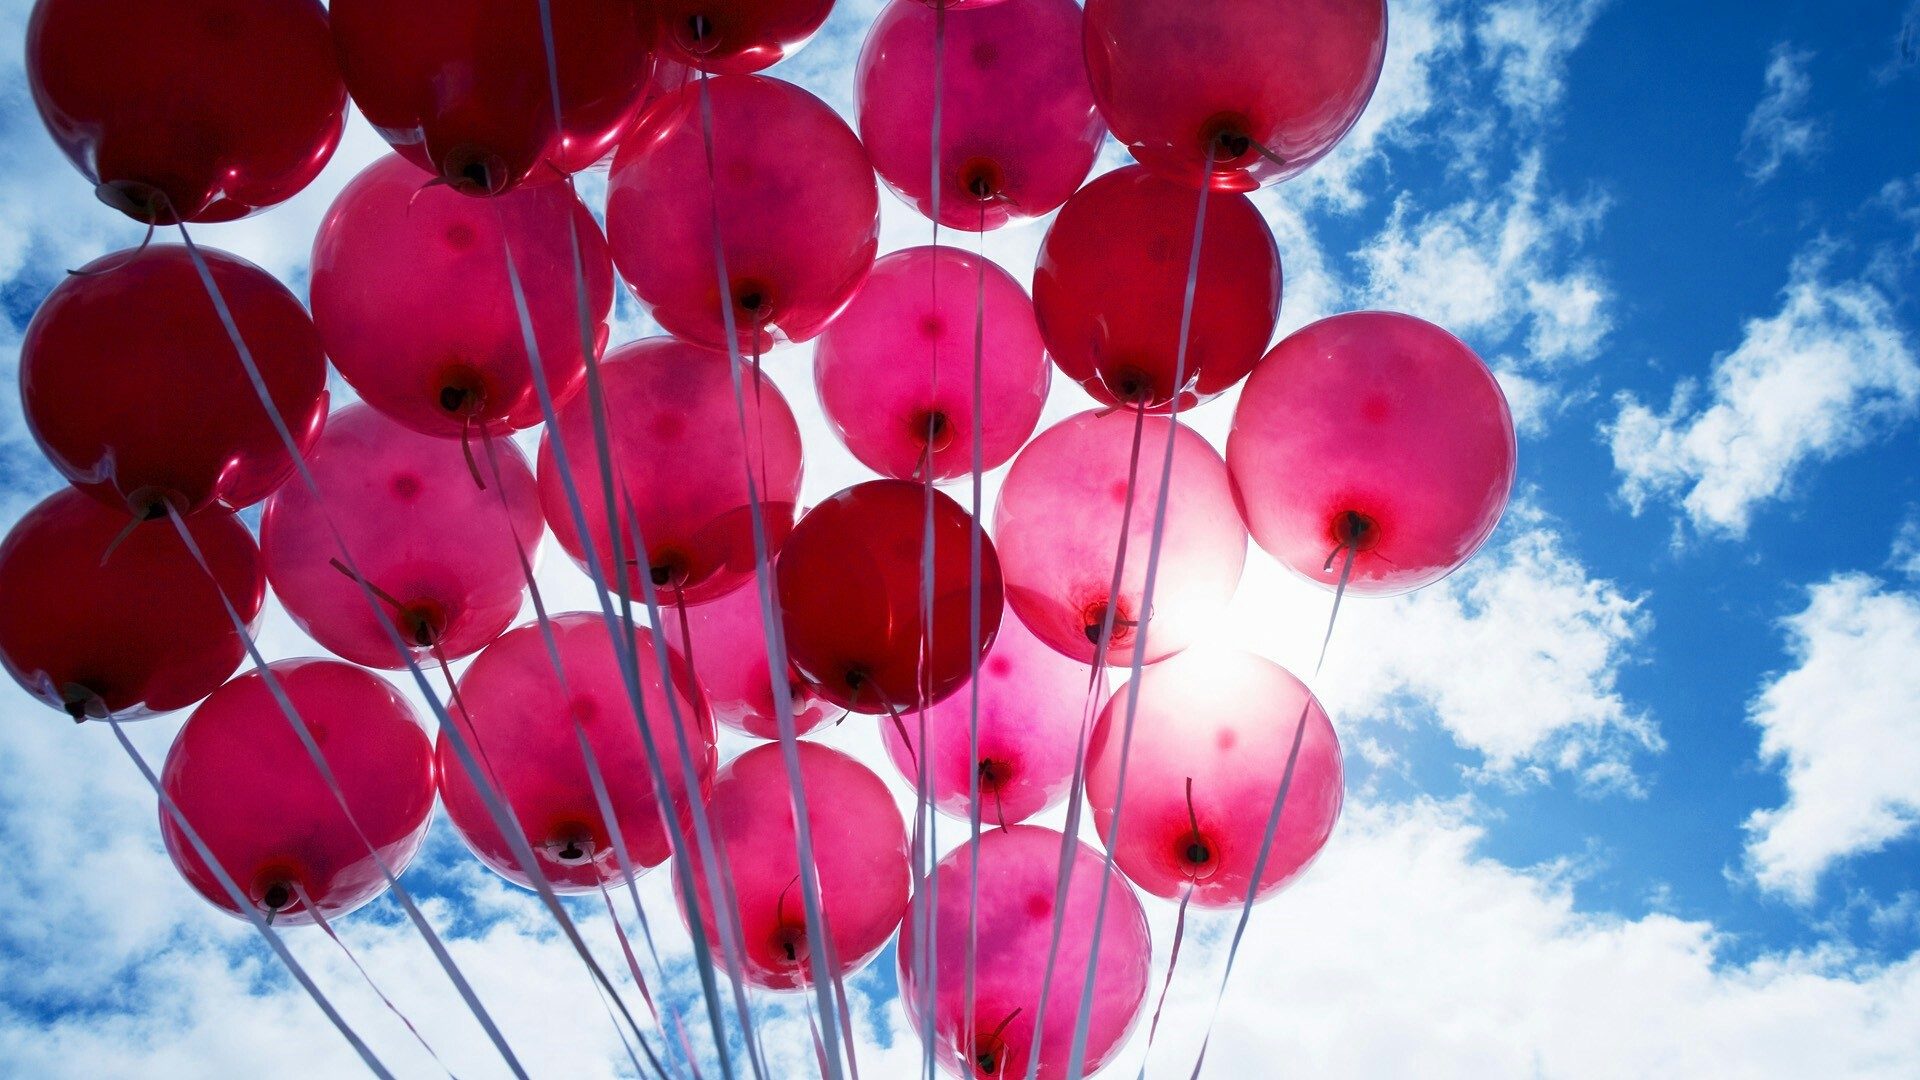 cffbffbbcdf-balloon-release-birthday-wallpaper-wpc5801554